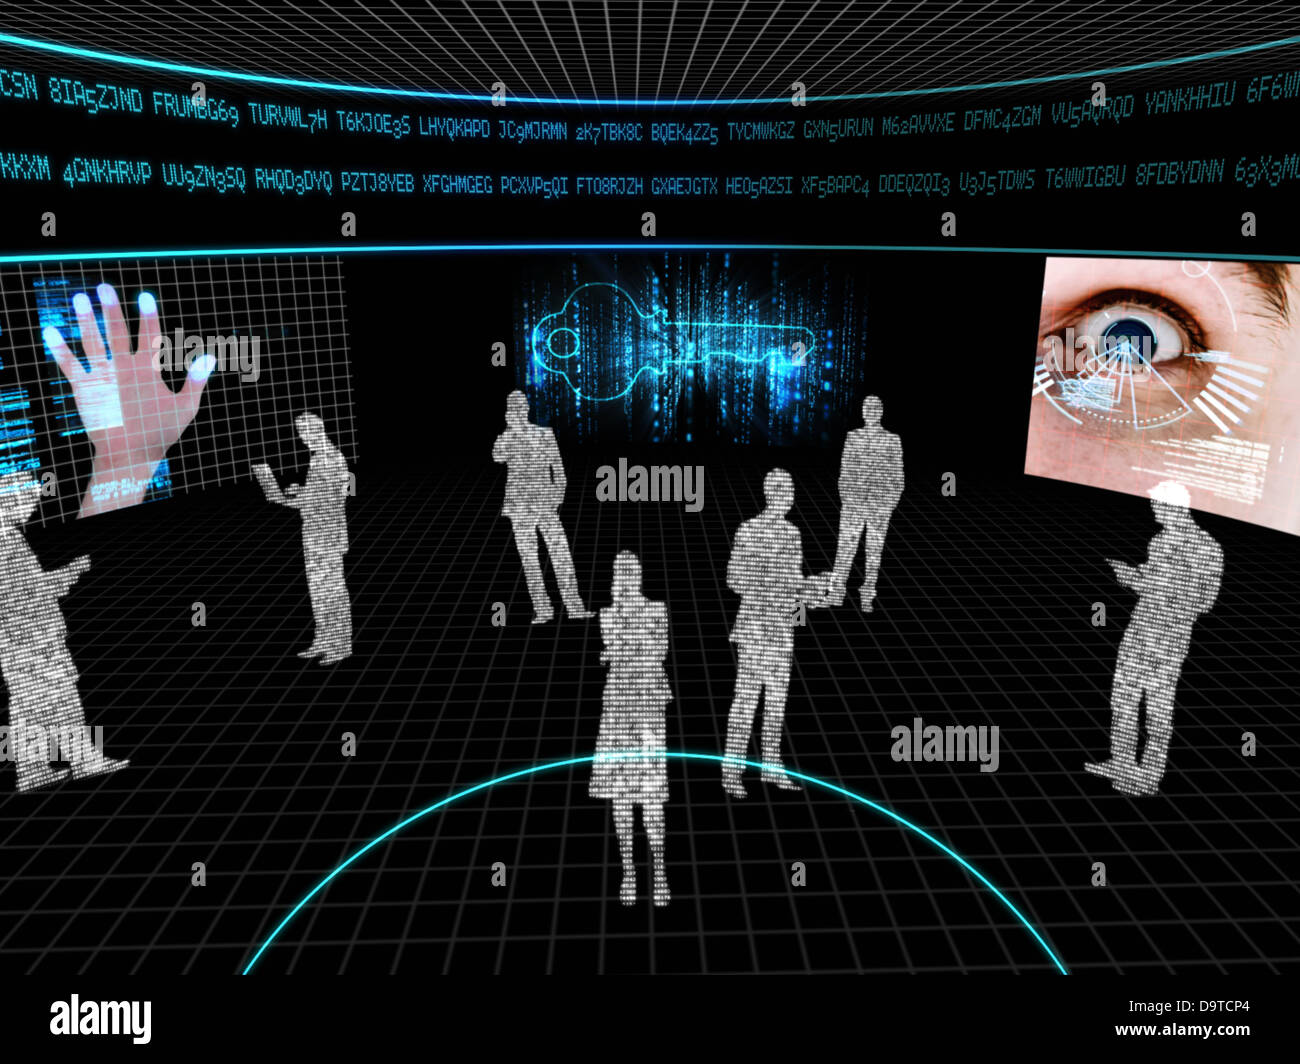 Silhouettes made of computer data with display screens - Stock Image